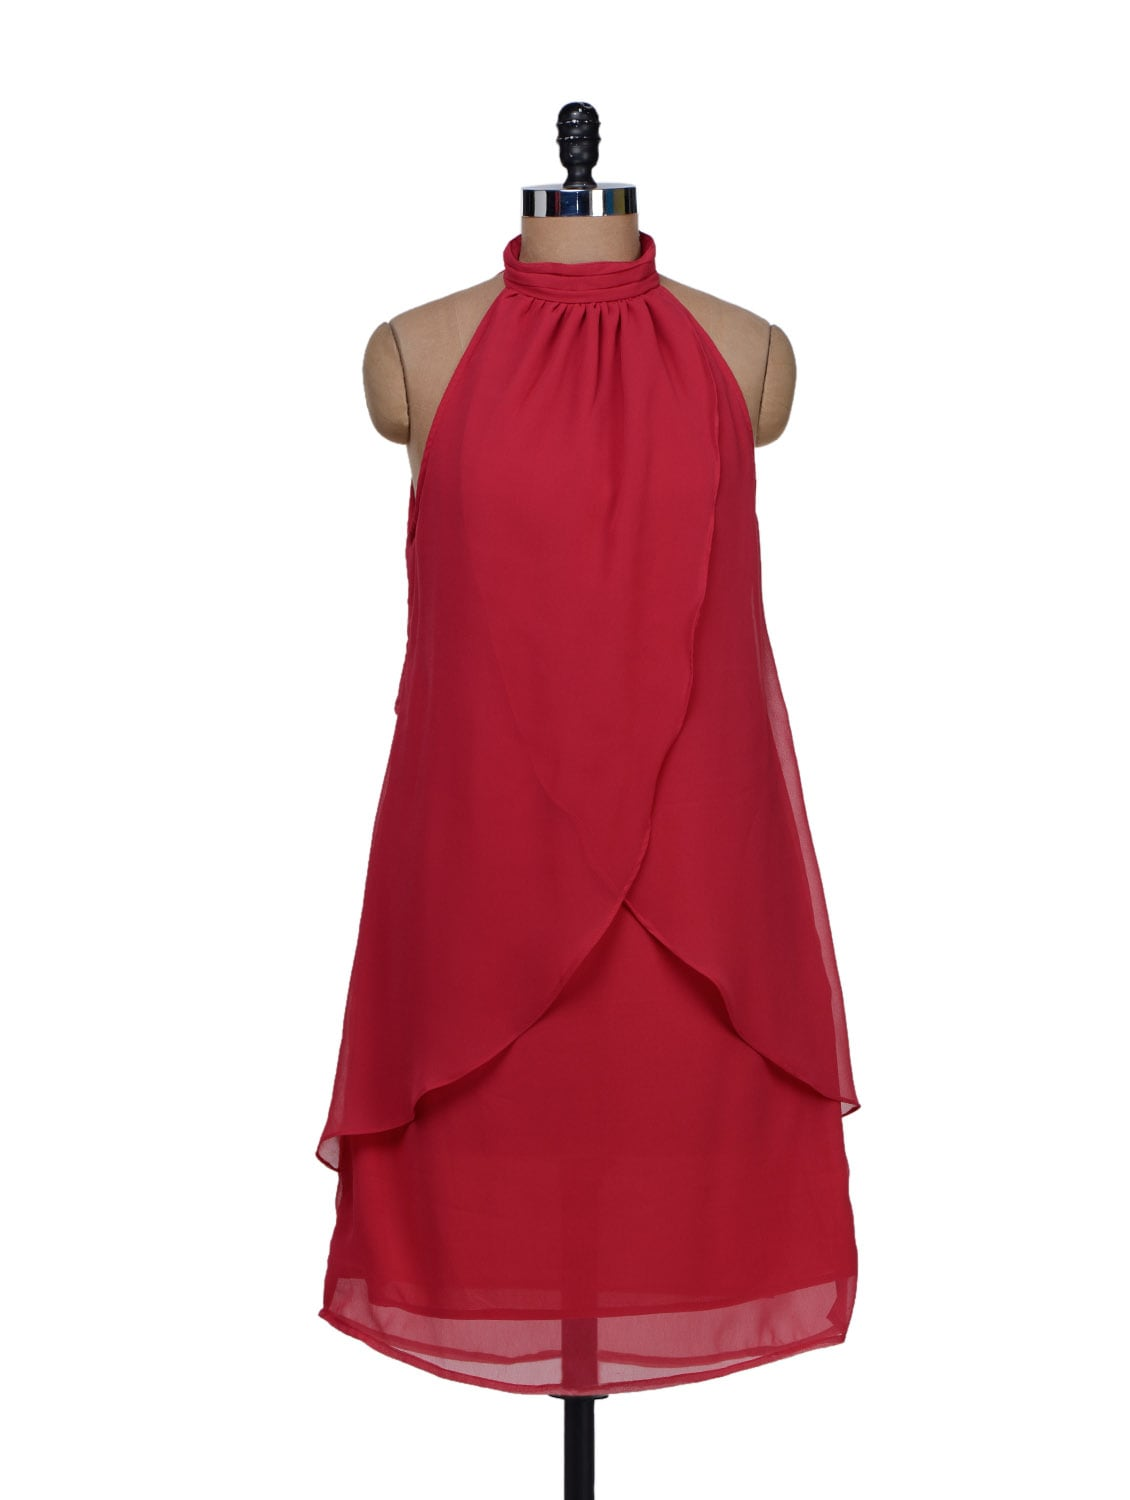 Wavy Drapes Halter Neck Red Dress - Meee